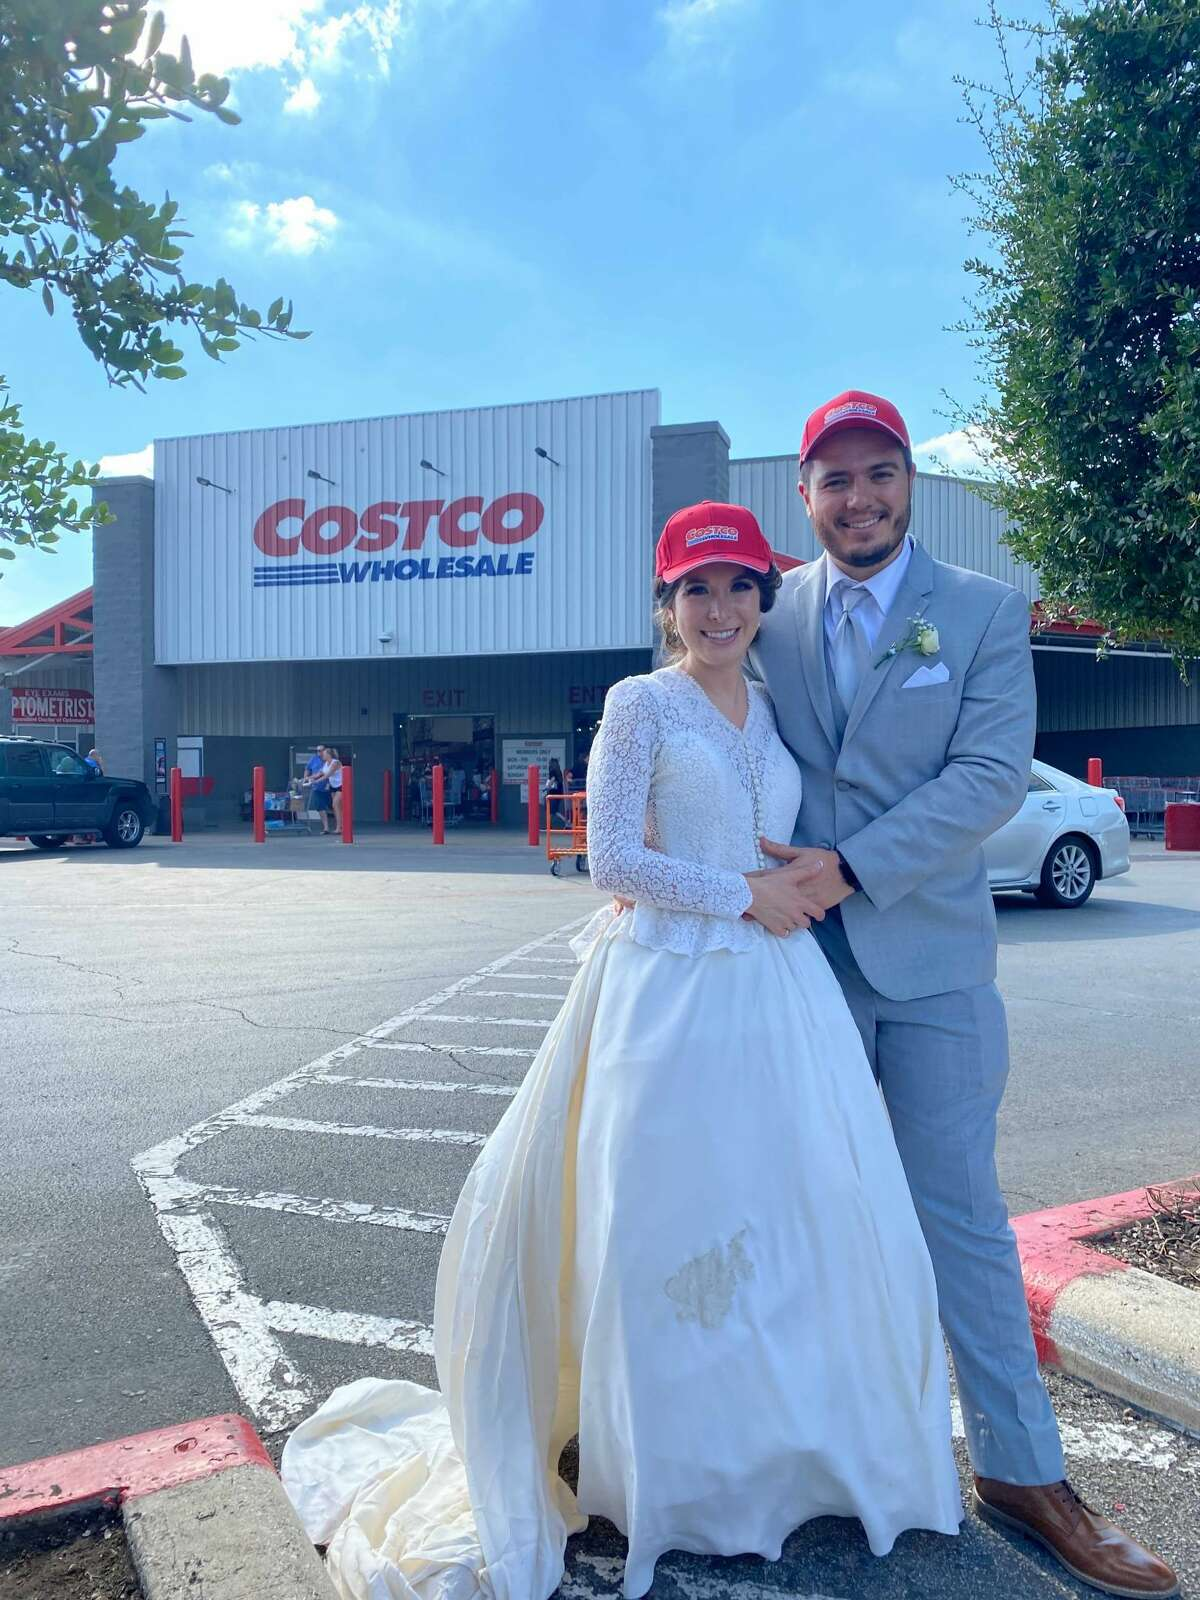 Mariana and her husband Gerado made a stop at Costco after their wedding.